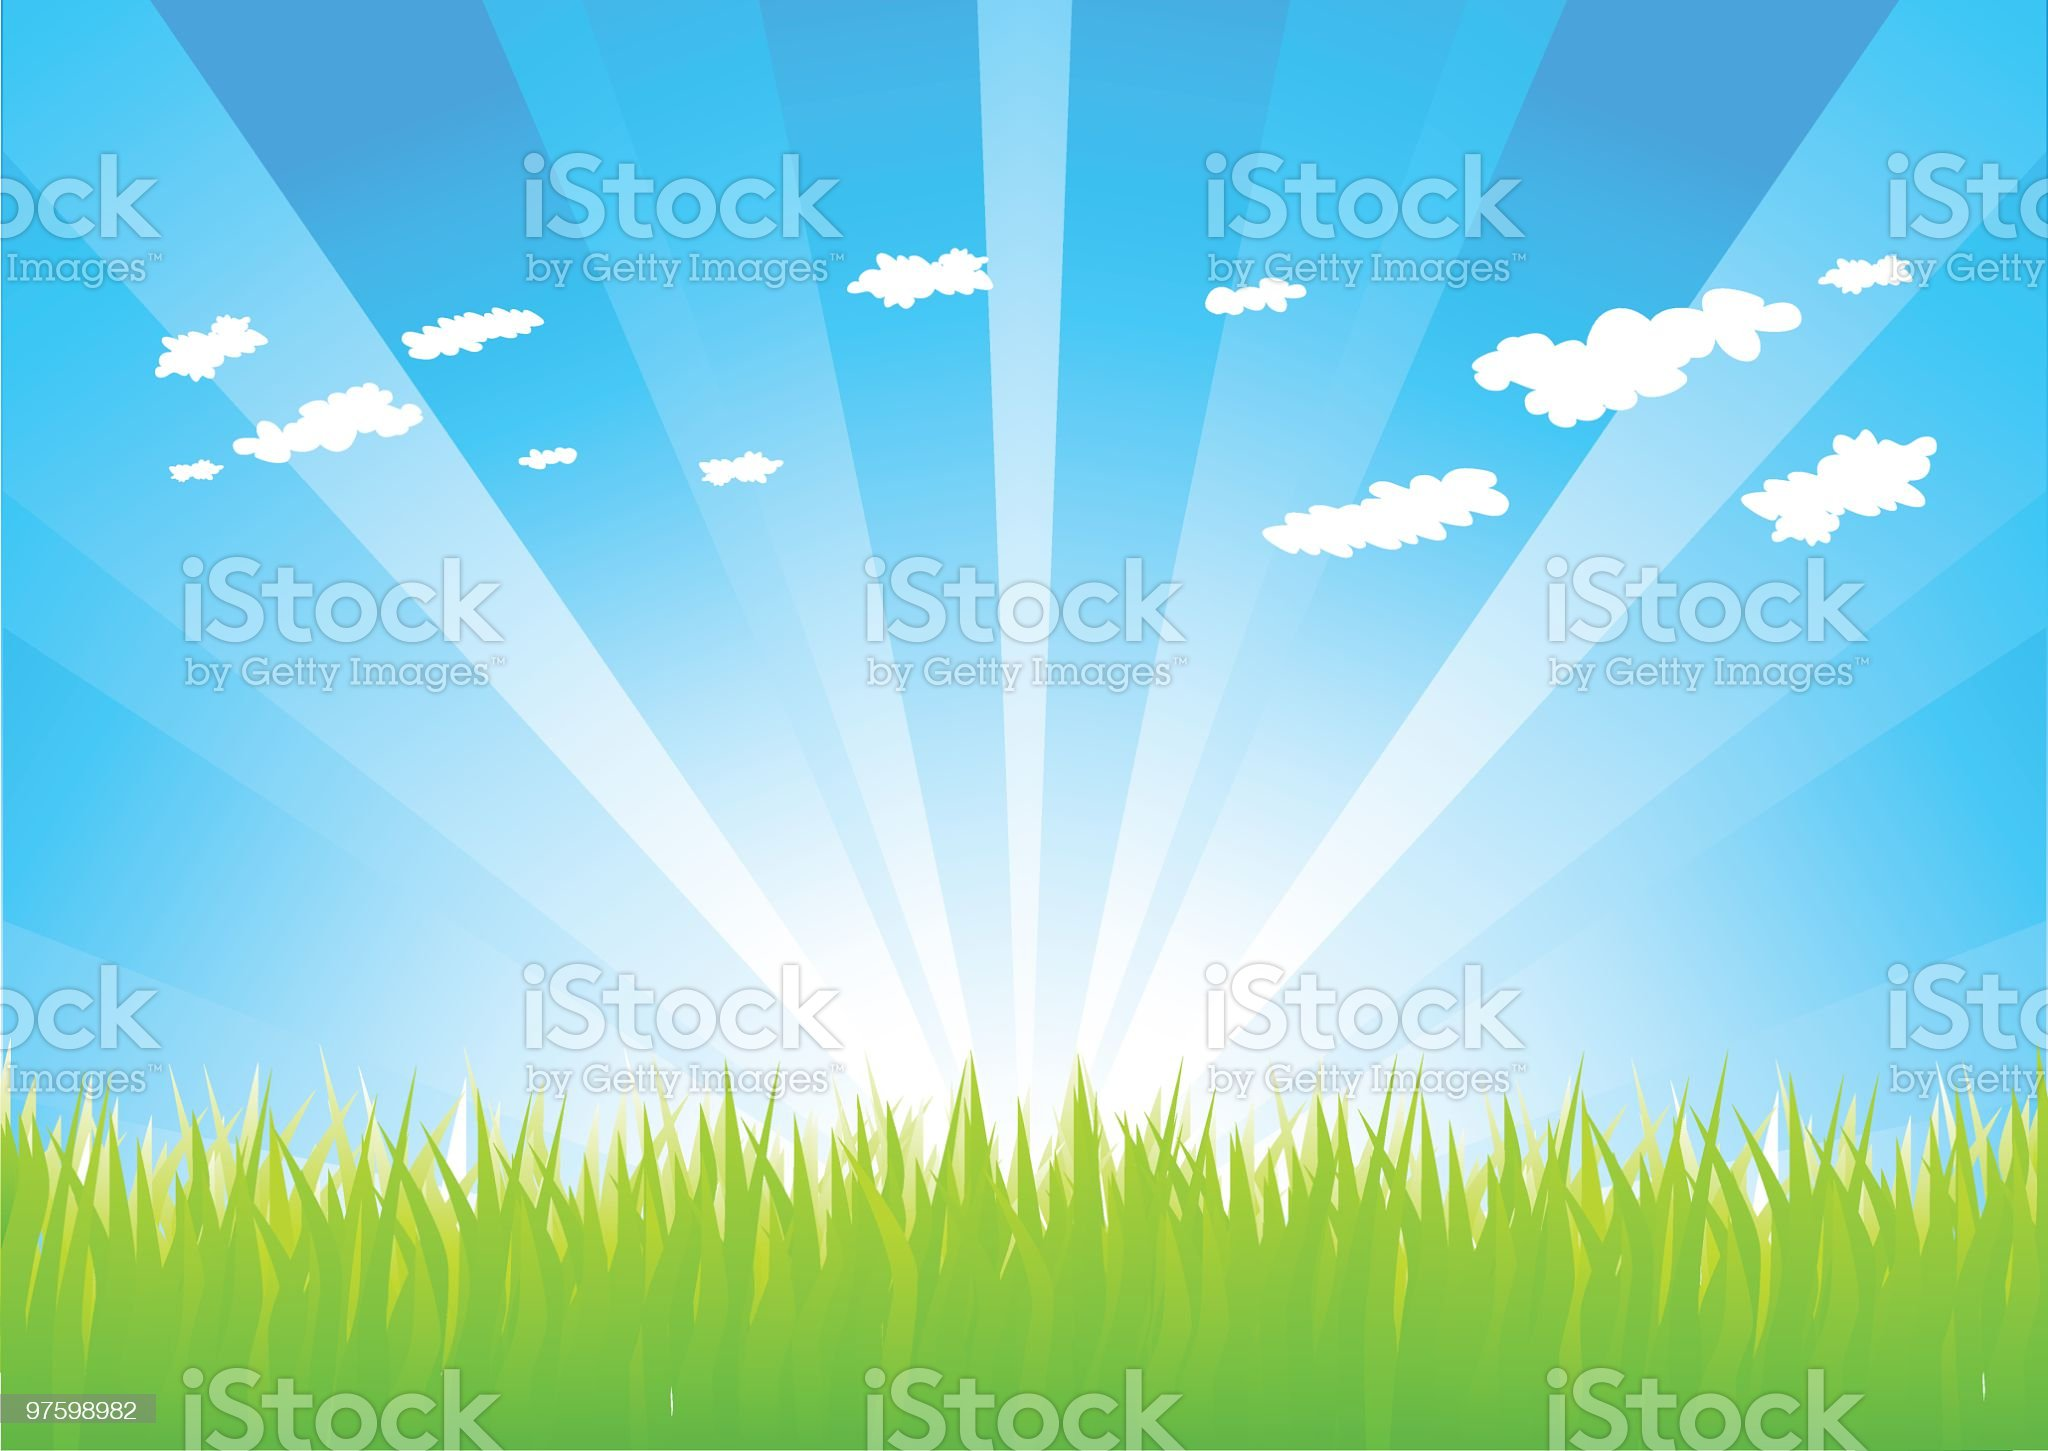 Picture of green grass royalty-free stock vector art